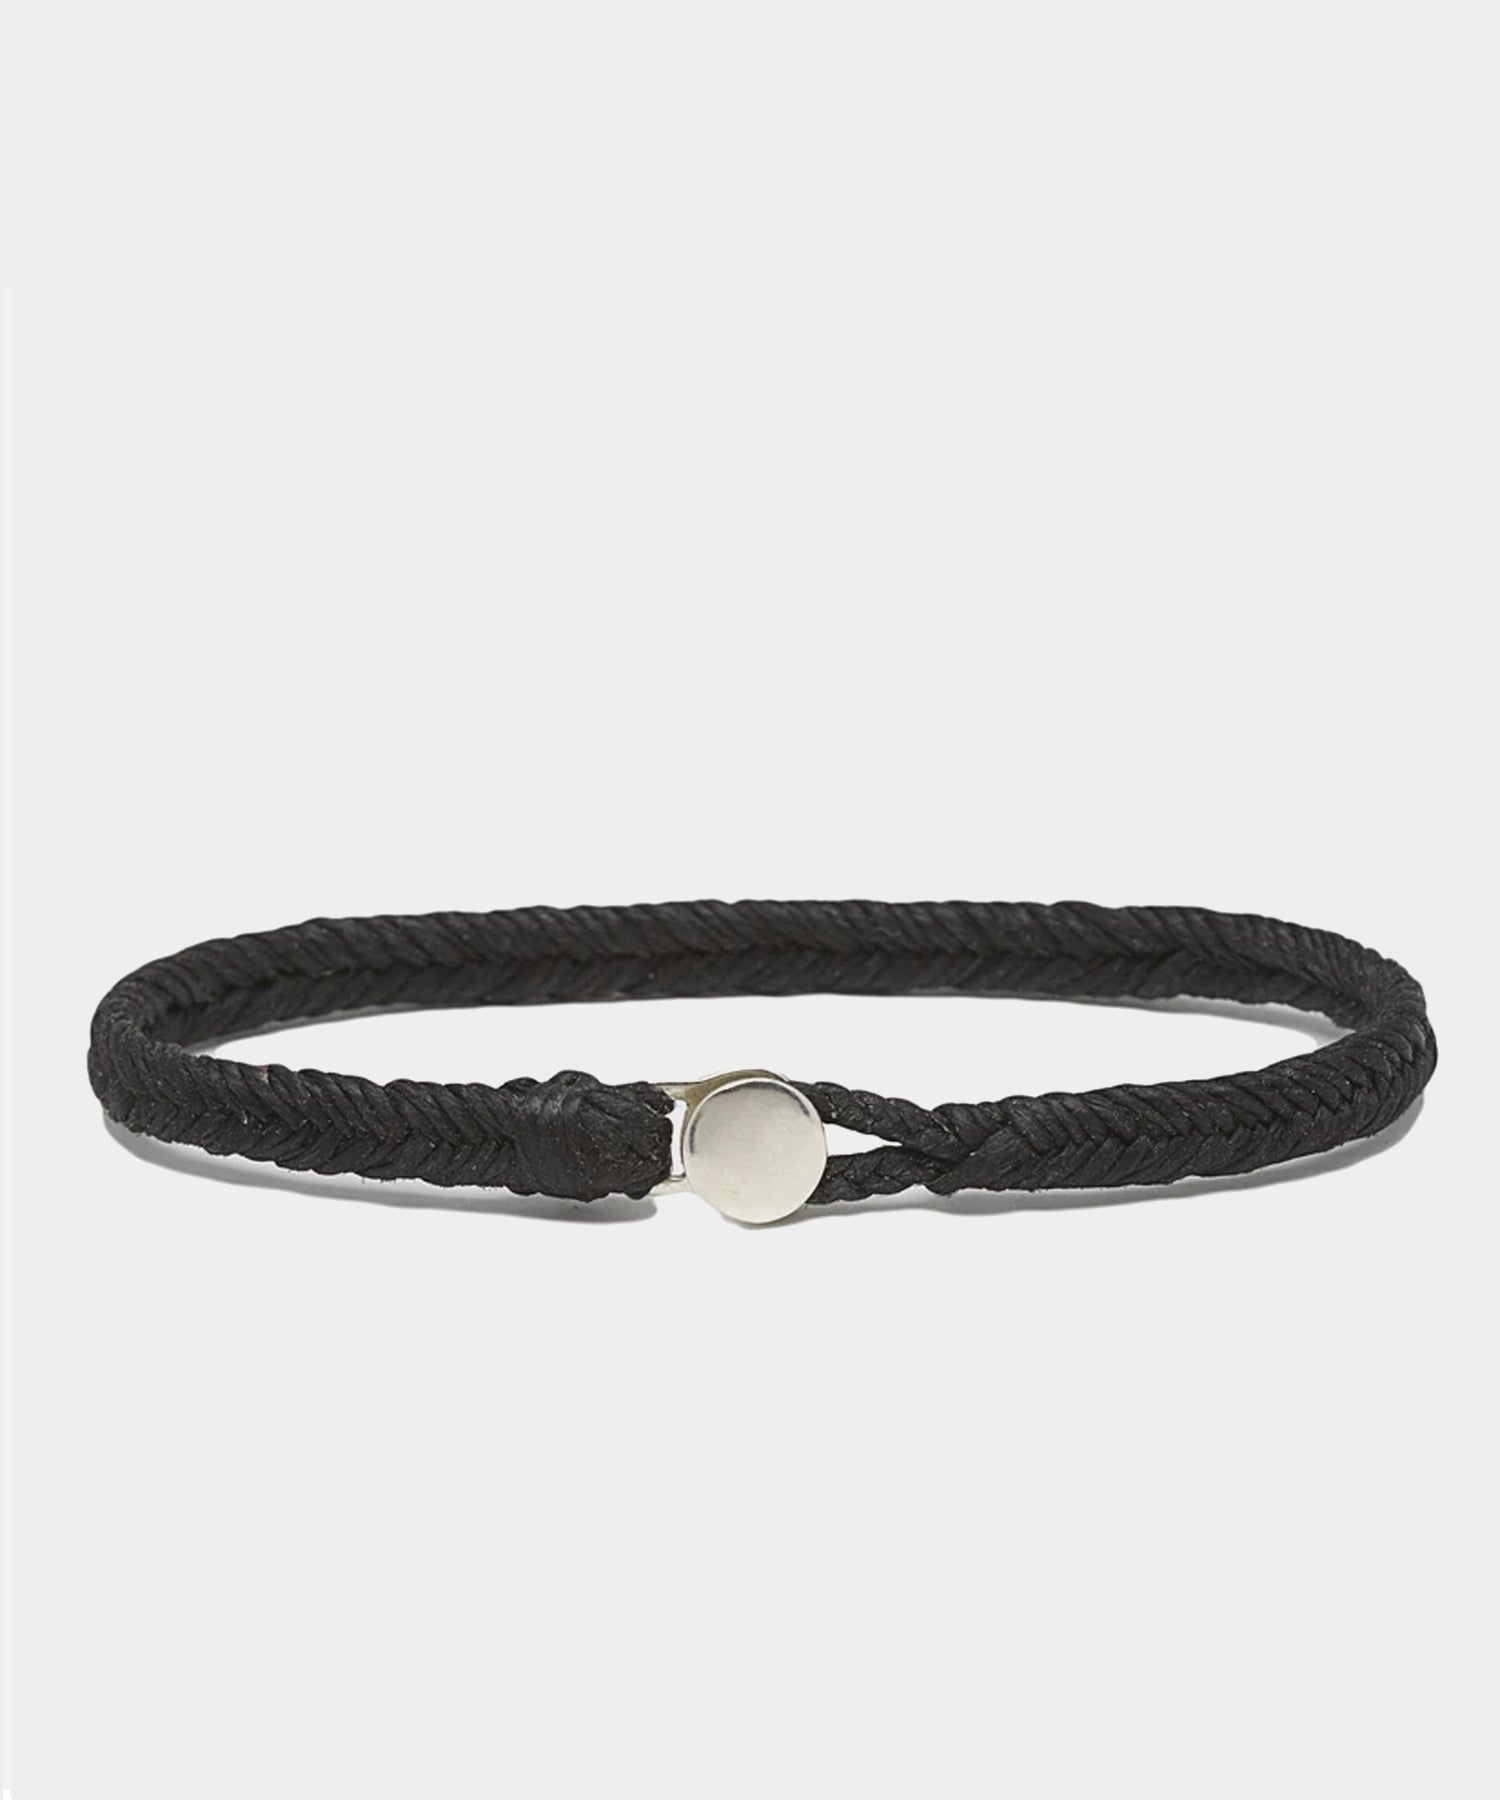 Scoshsa Classic Fishtail Button Bracelet in Black